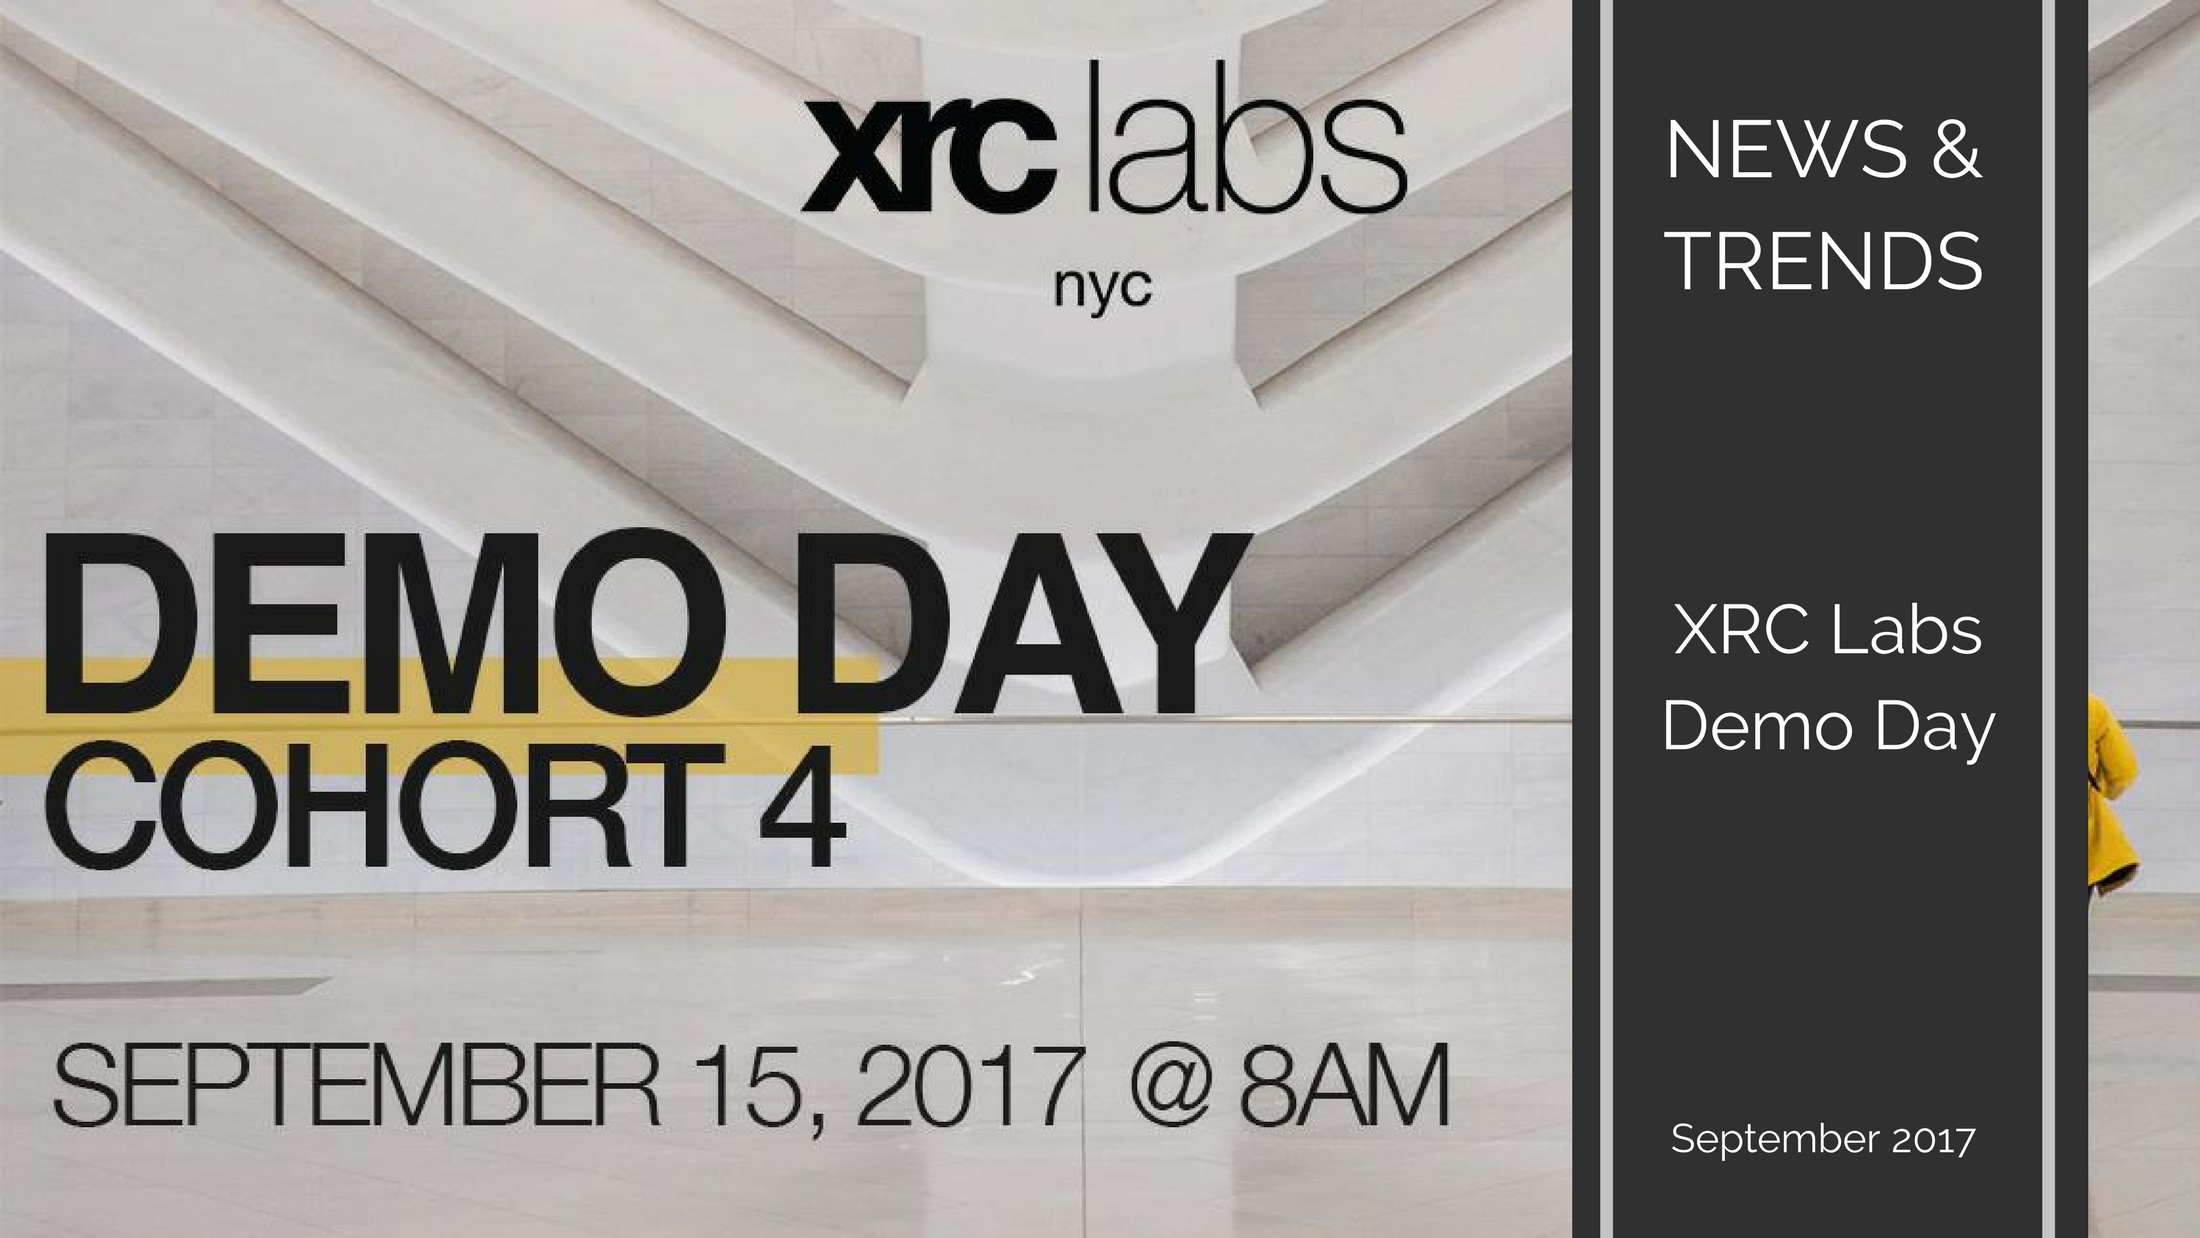 xrc labs demo day bdc digital retail consulting